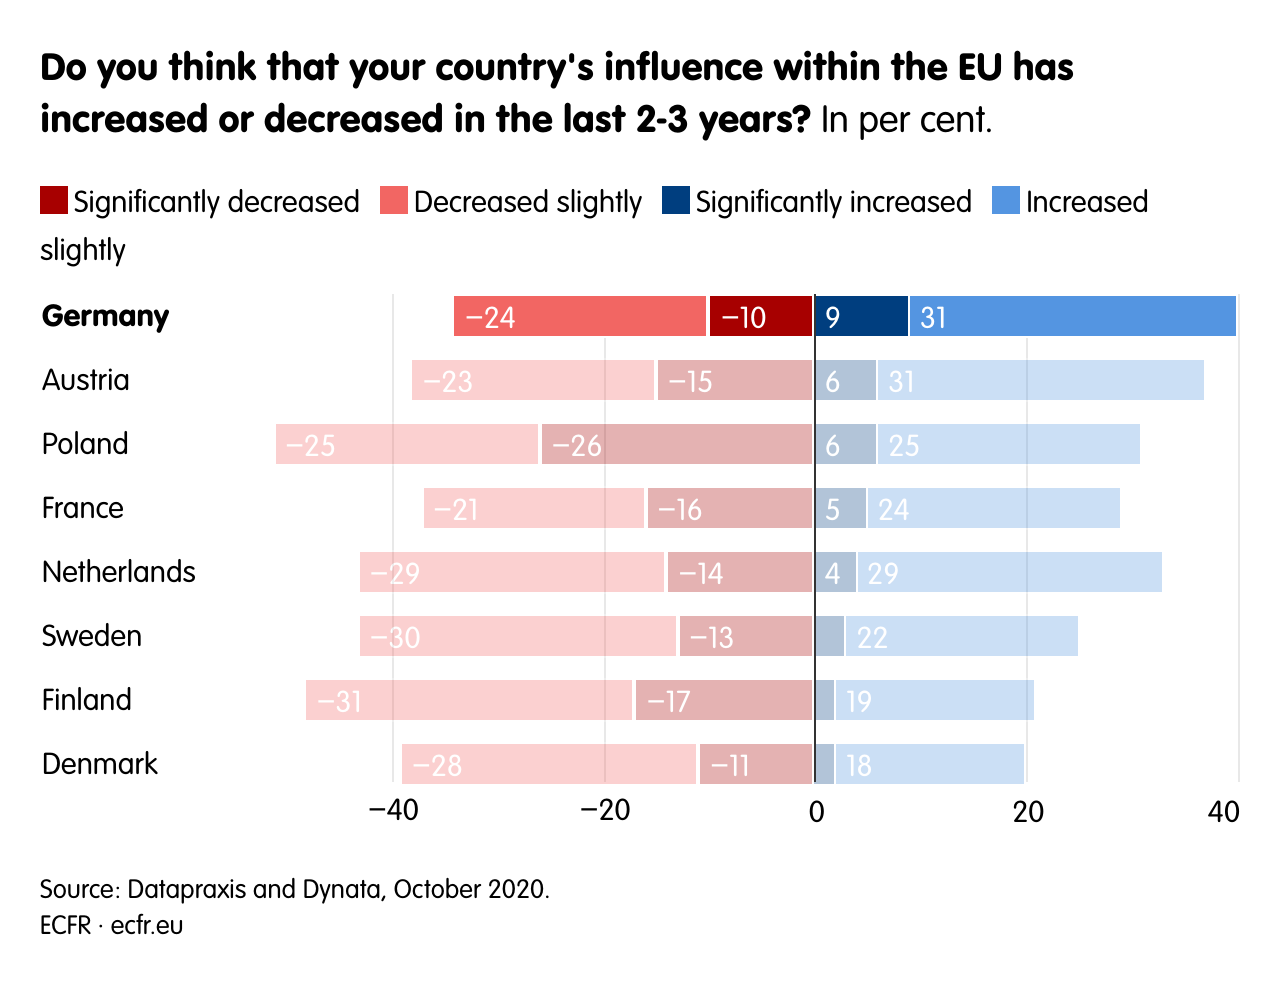 Do you think that your country's influence within the EU has increased or decreased in the last 2-3 years?